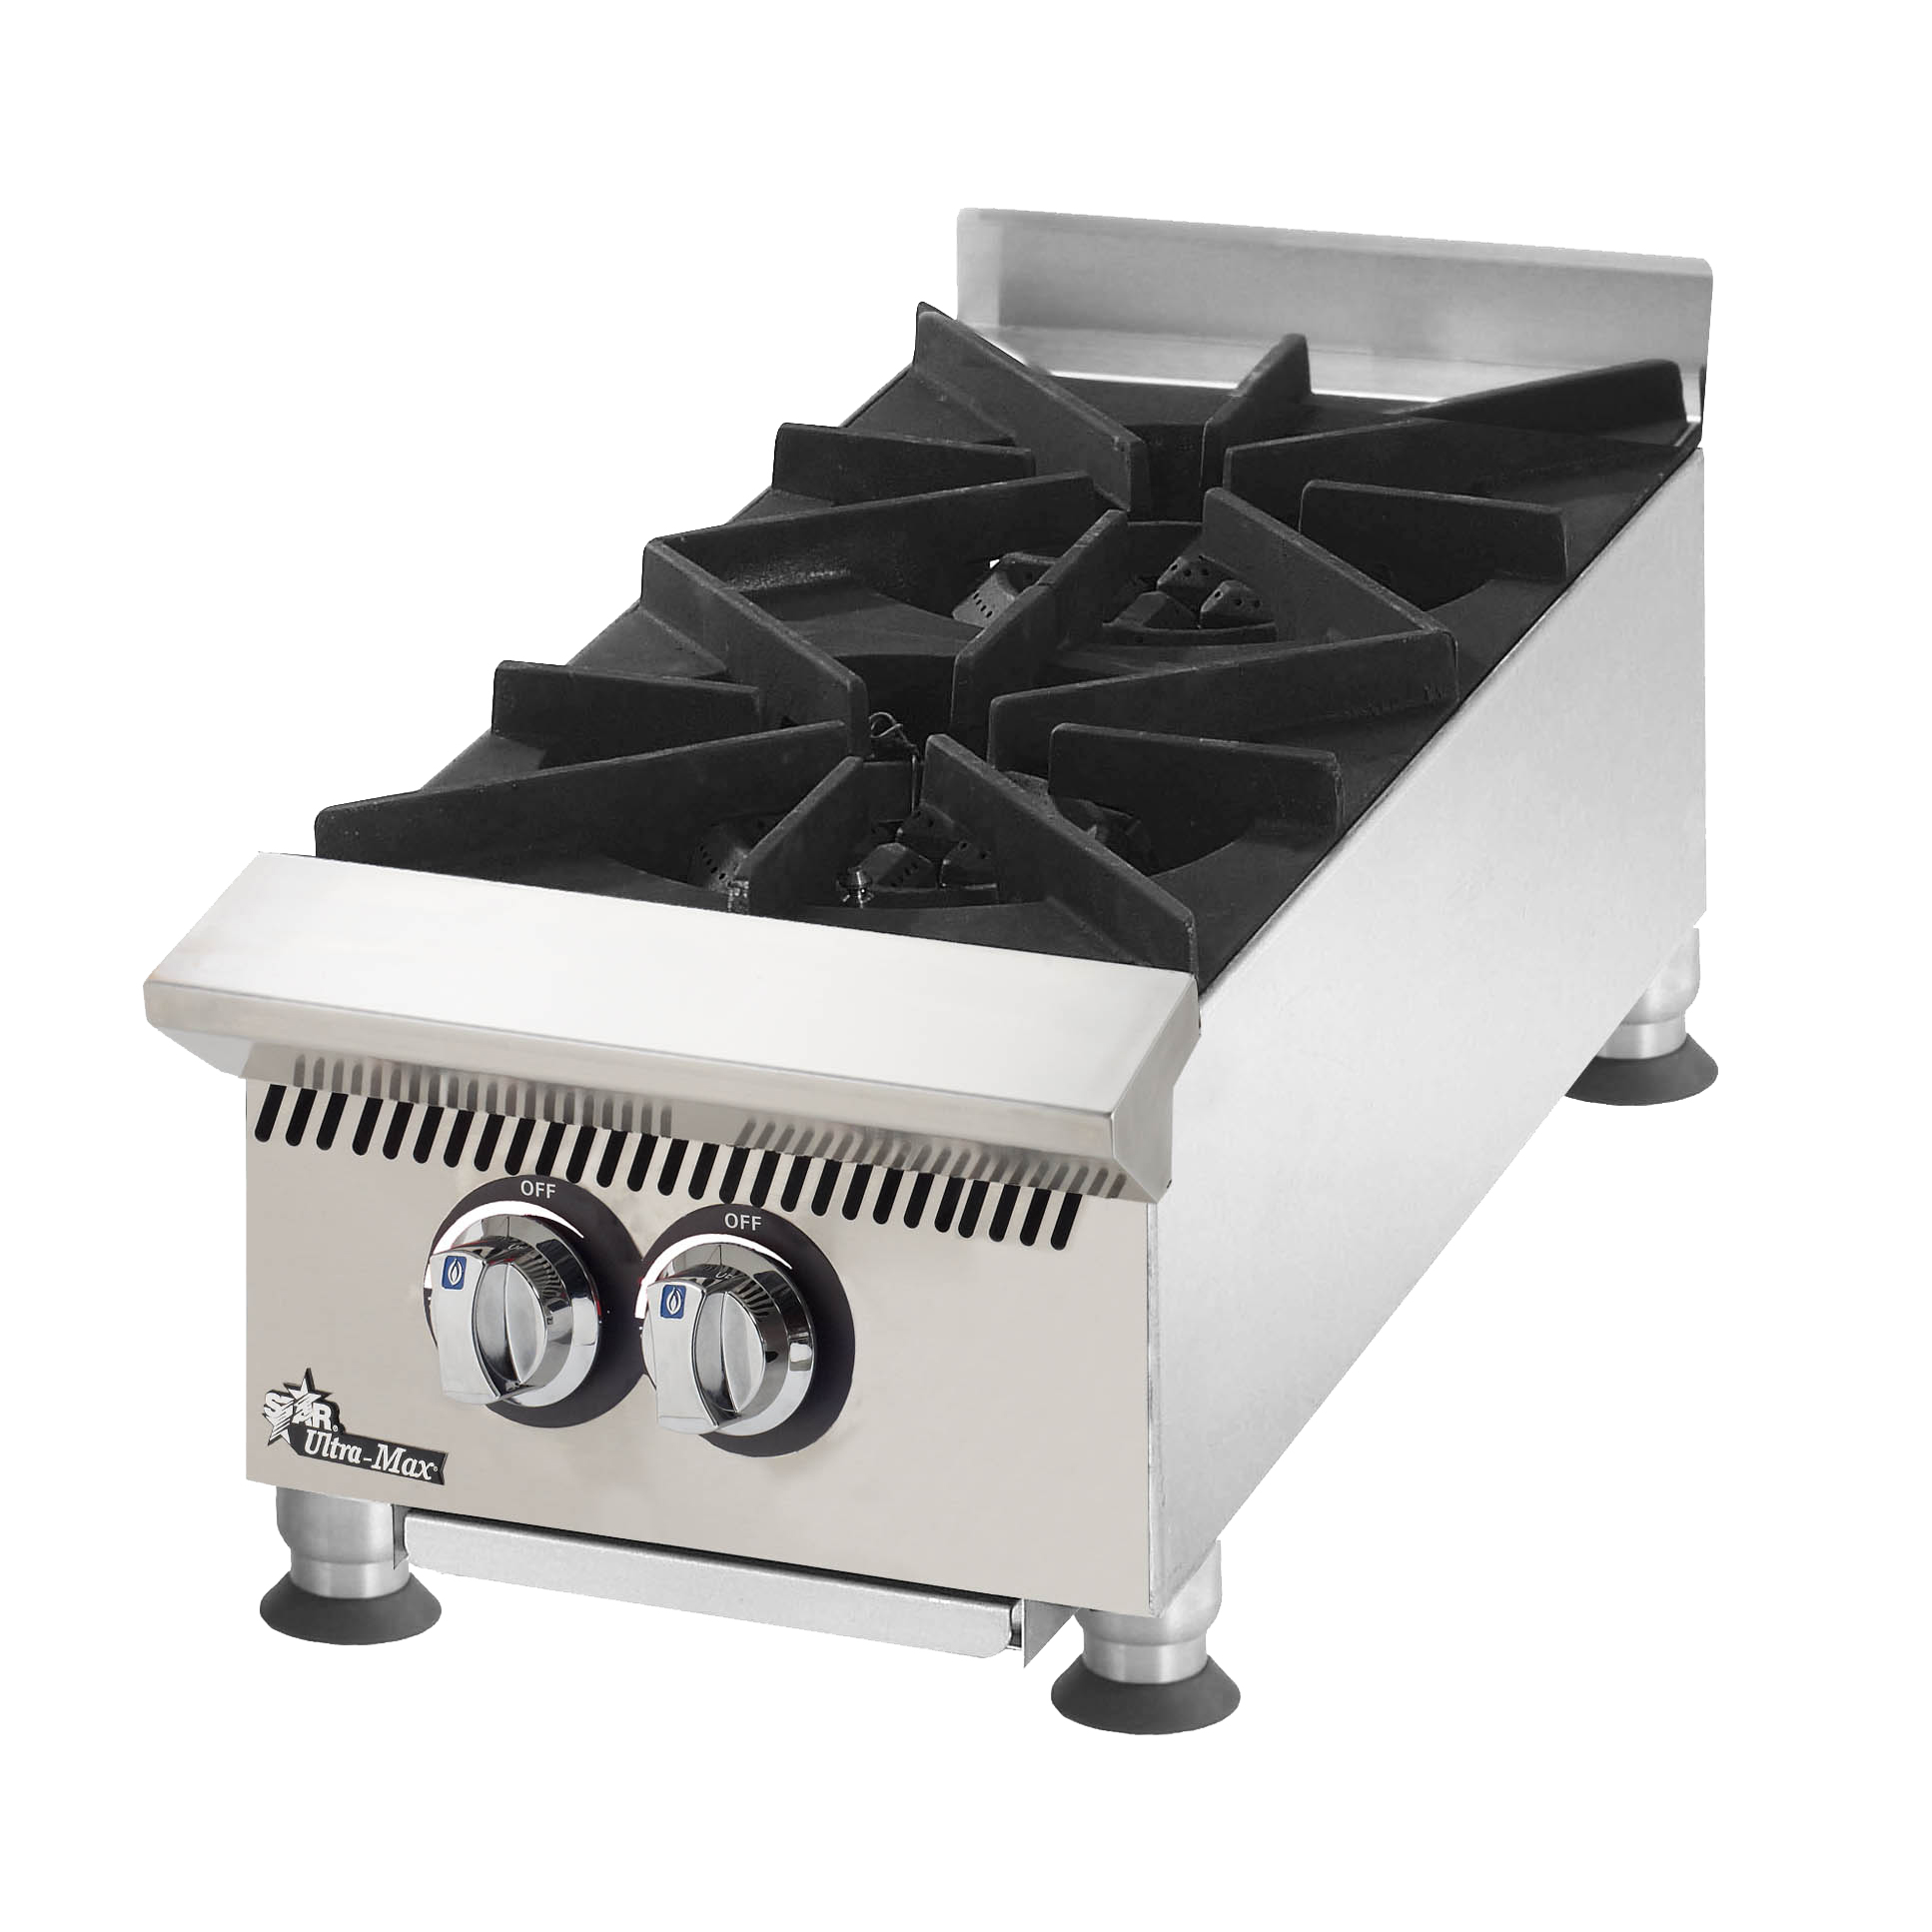 Star 802HA hotplate, countertop, gas